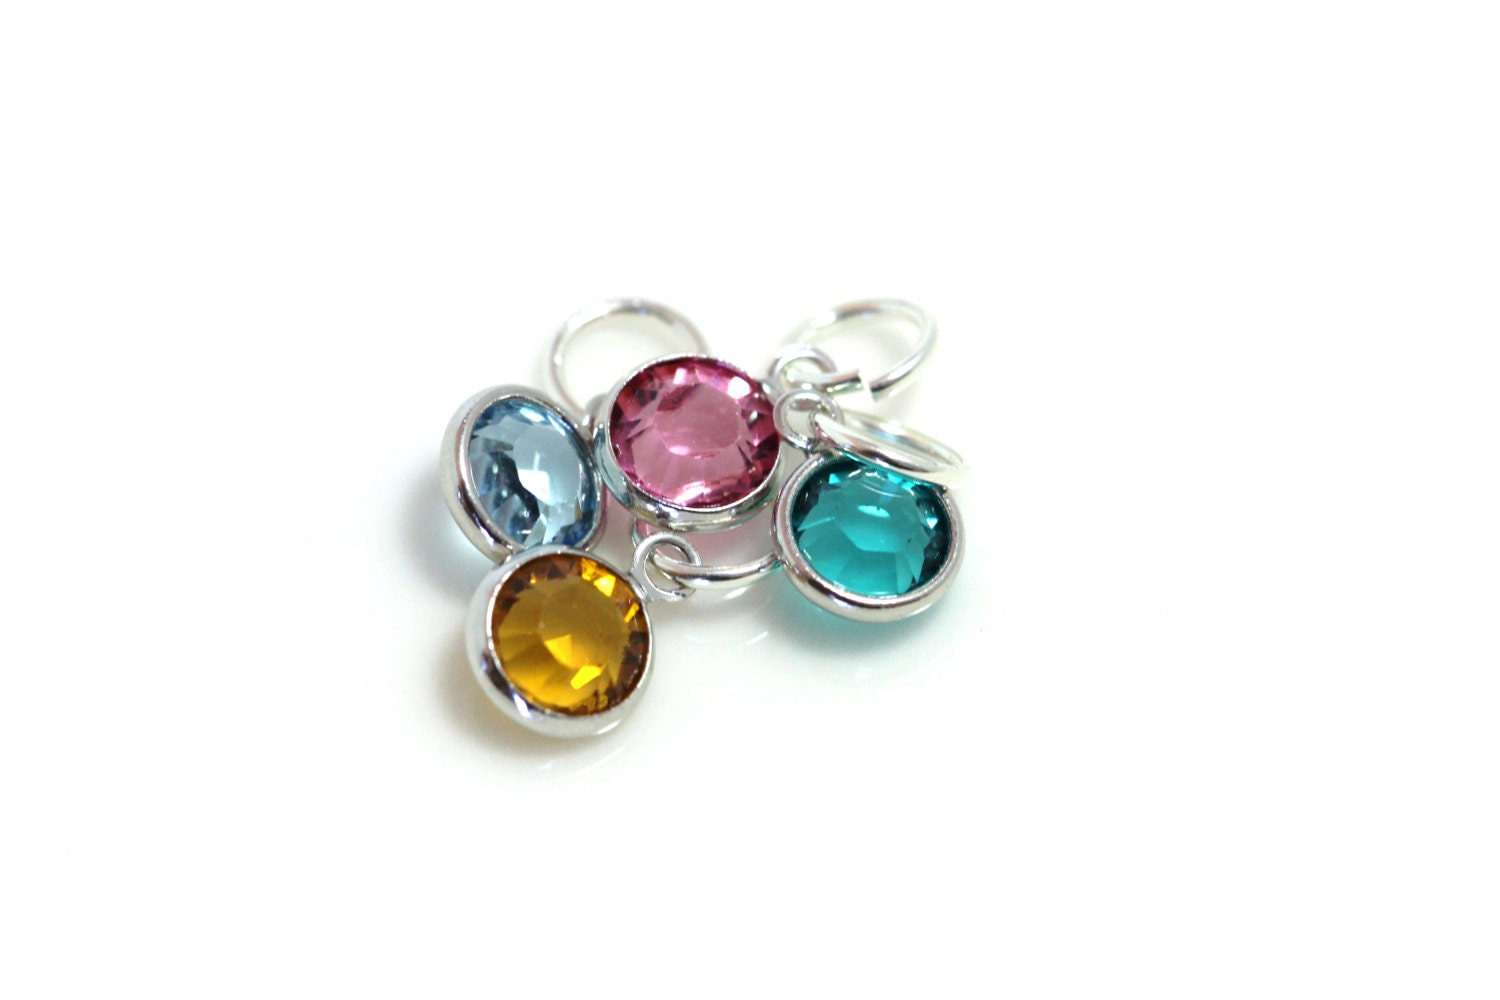 Birthstone charms swarovski crystal charm sterling for Birthstone beads for jewelry making